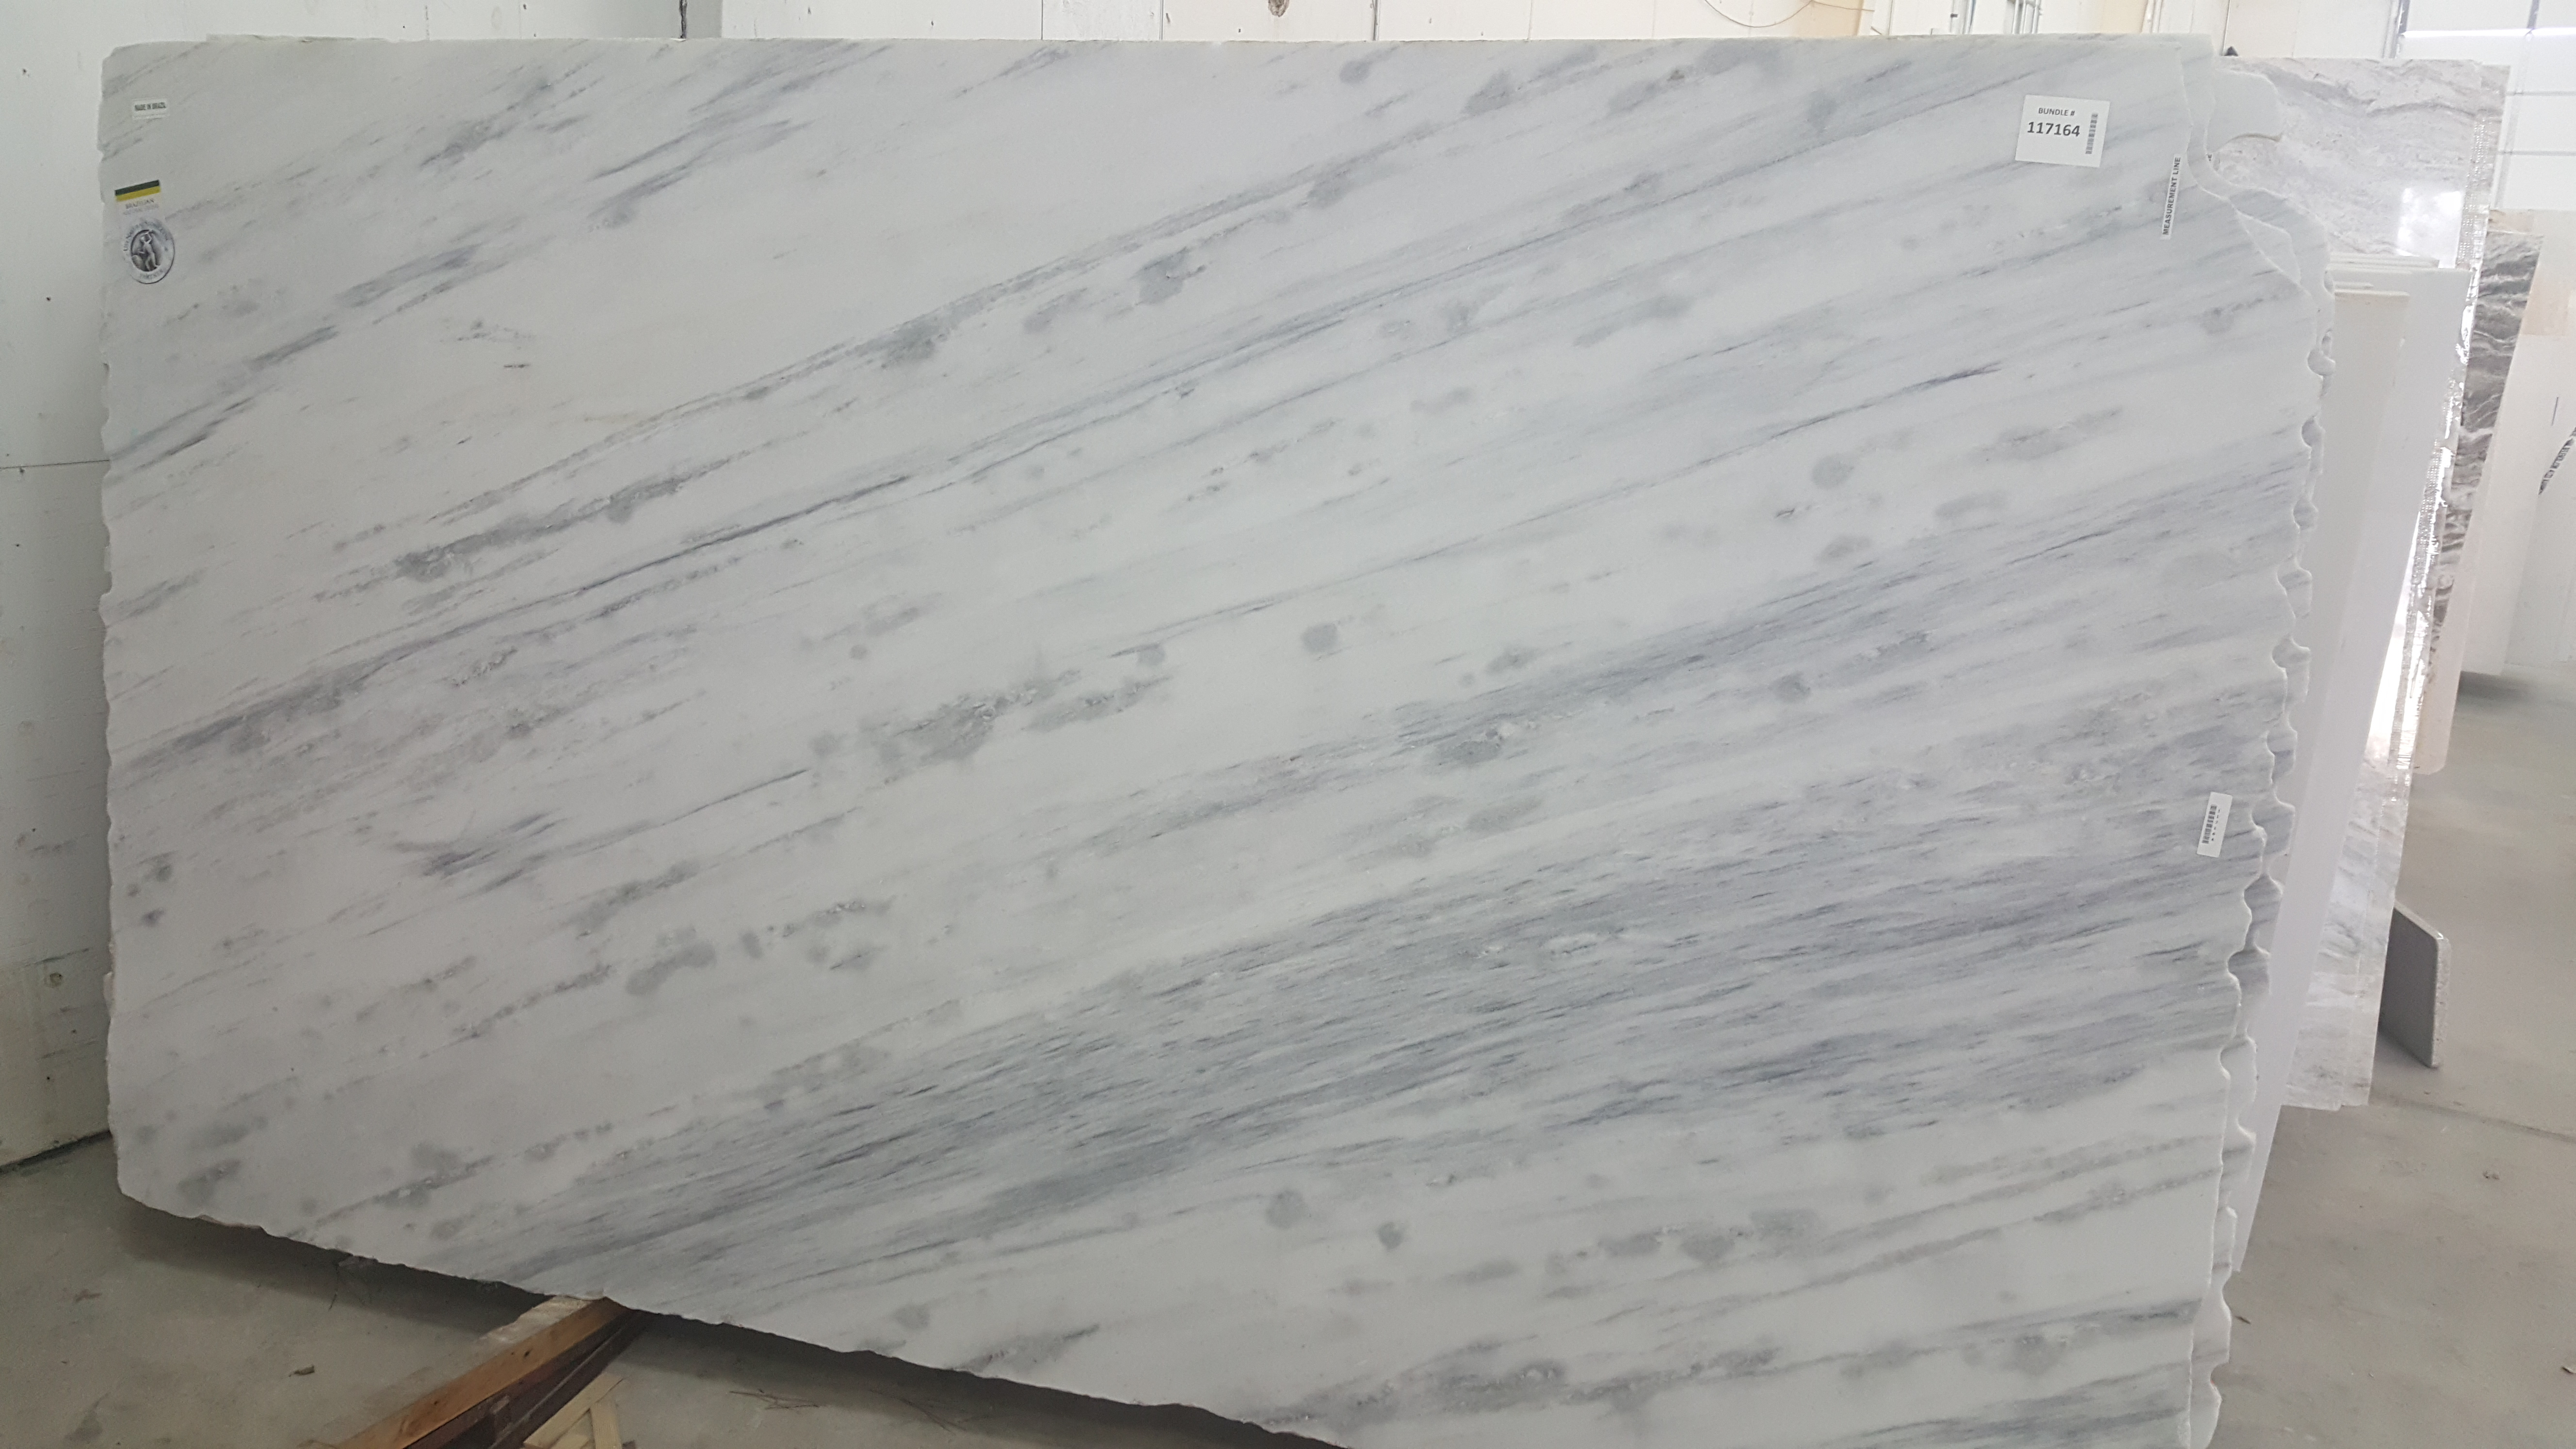 Superieur Even Though Marble Has A Reputation Of Not Being A Good Material For  Kitchen Countertops, QSC Is Definitely Seeing A Renaissance In This  Material.